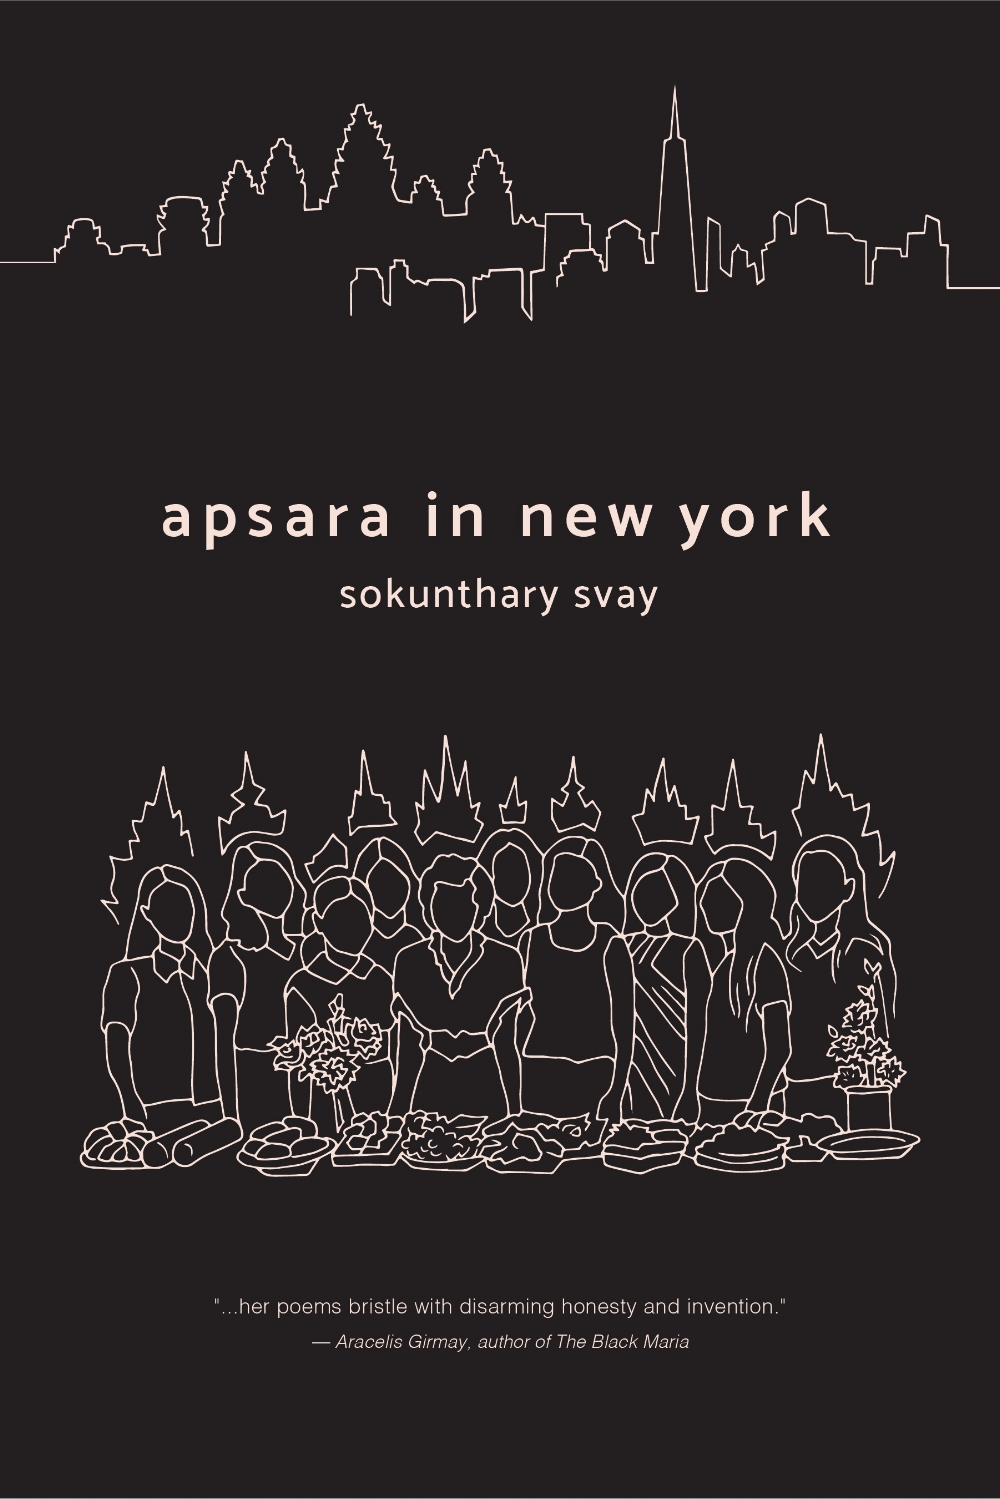 Contact for bookings and media inquiries. - Apsara in New York, Willow Books (2017)